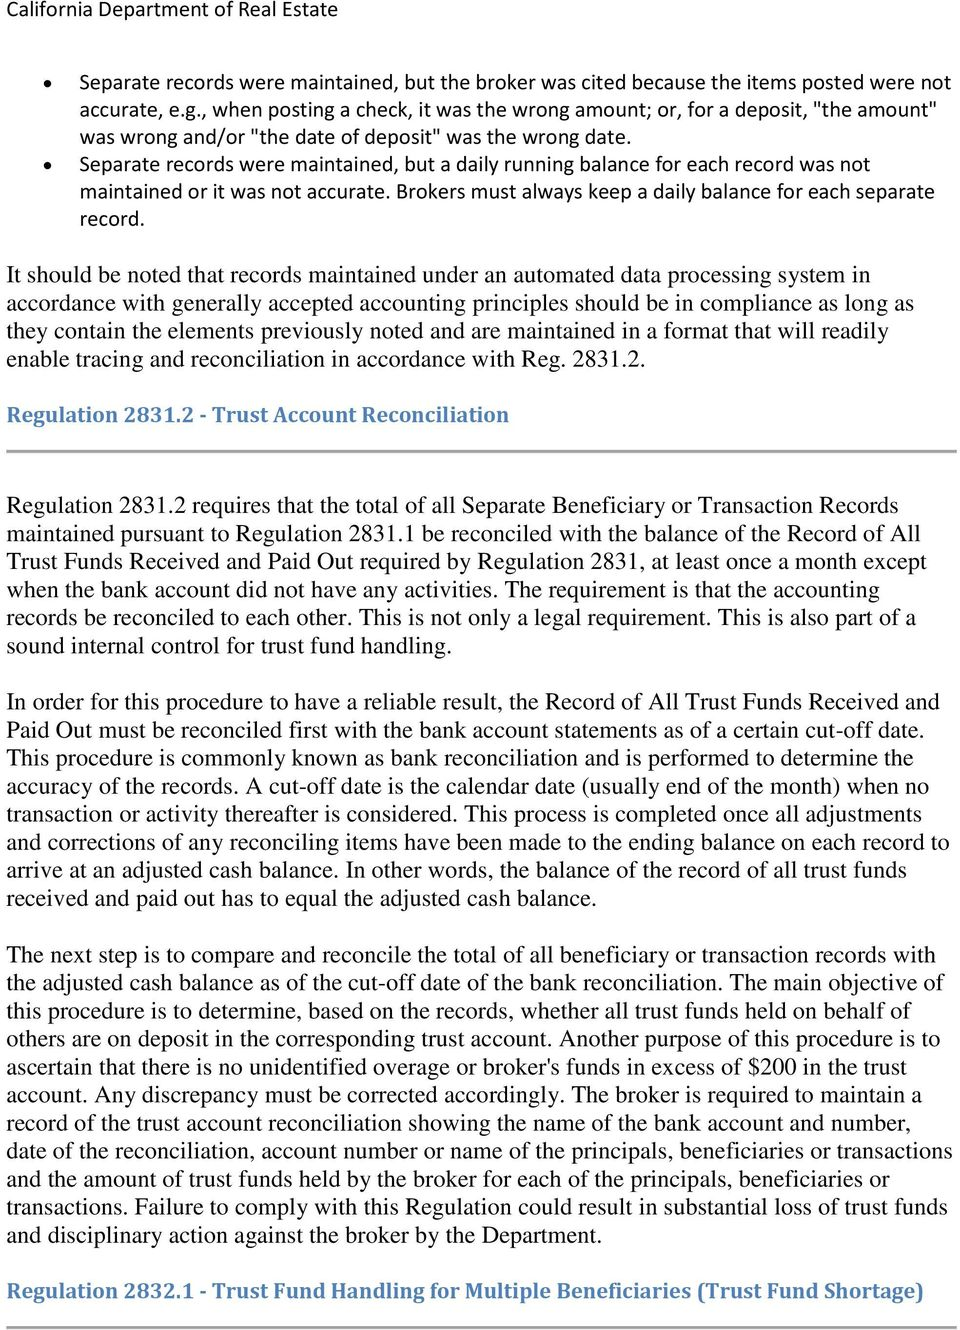 Separate records were maintained, but a daily running balance for each record was not maintained or it was not accurate. Brokers must always keep a daily balance for each separate record.